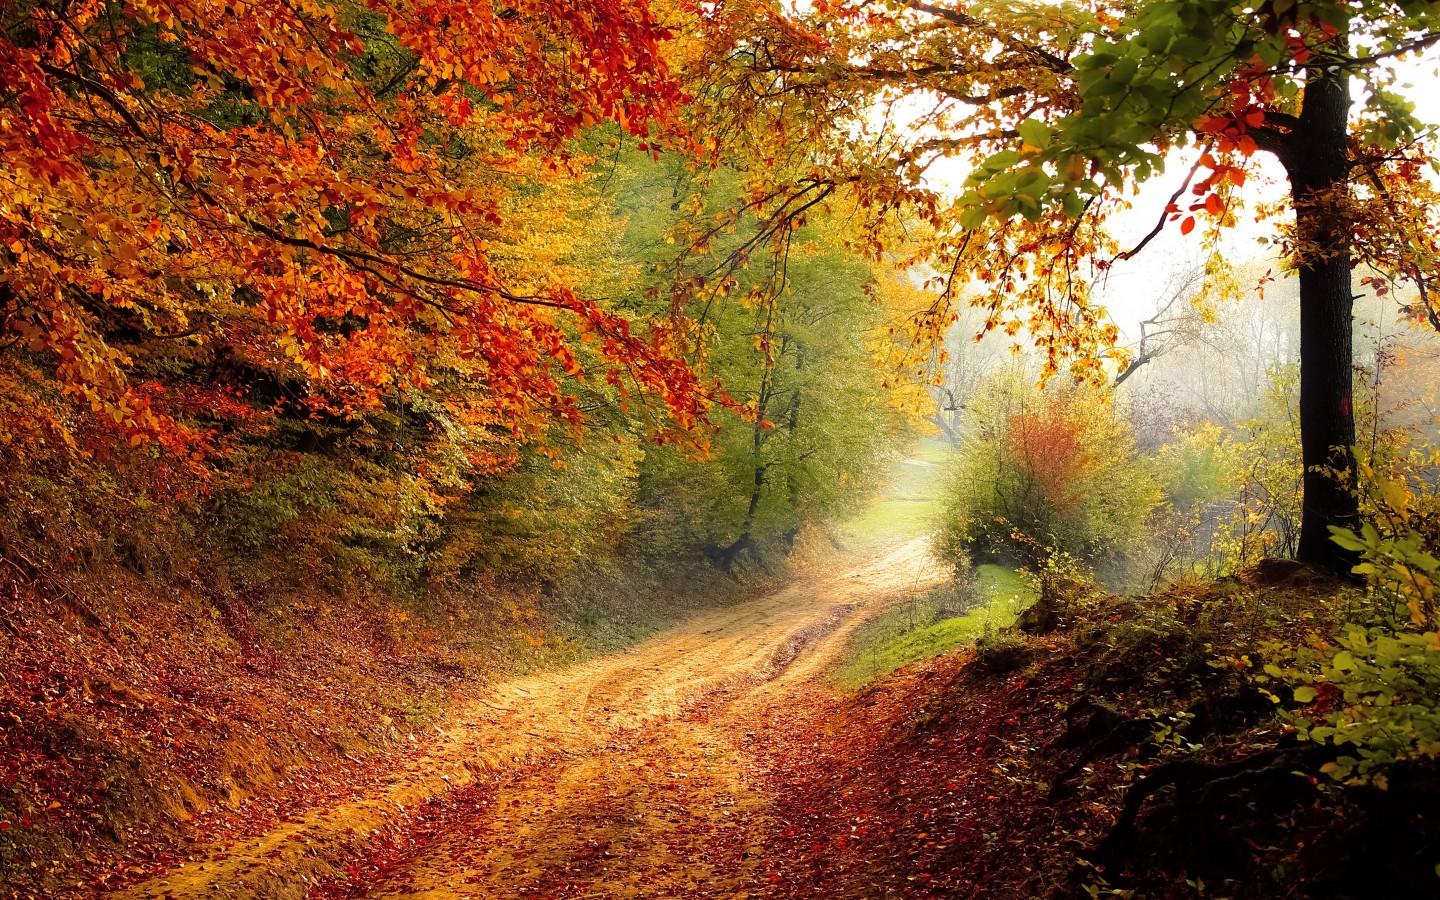 3d Fall Desktop Wallpaper Beautiful Autumn Road Wallpapers Hd Wallpapers Id 16828